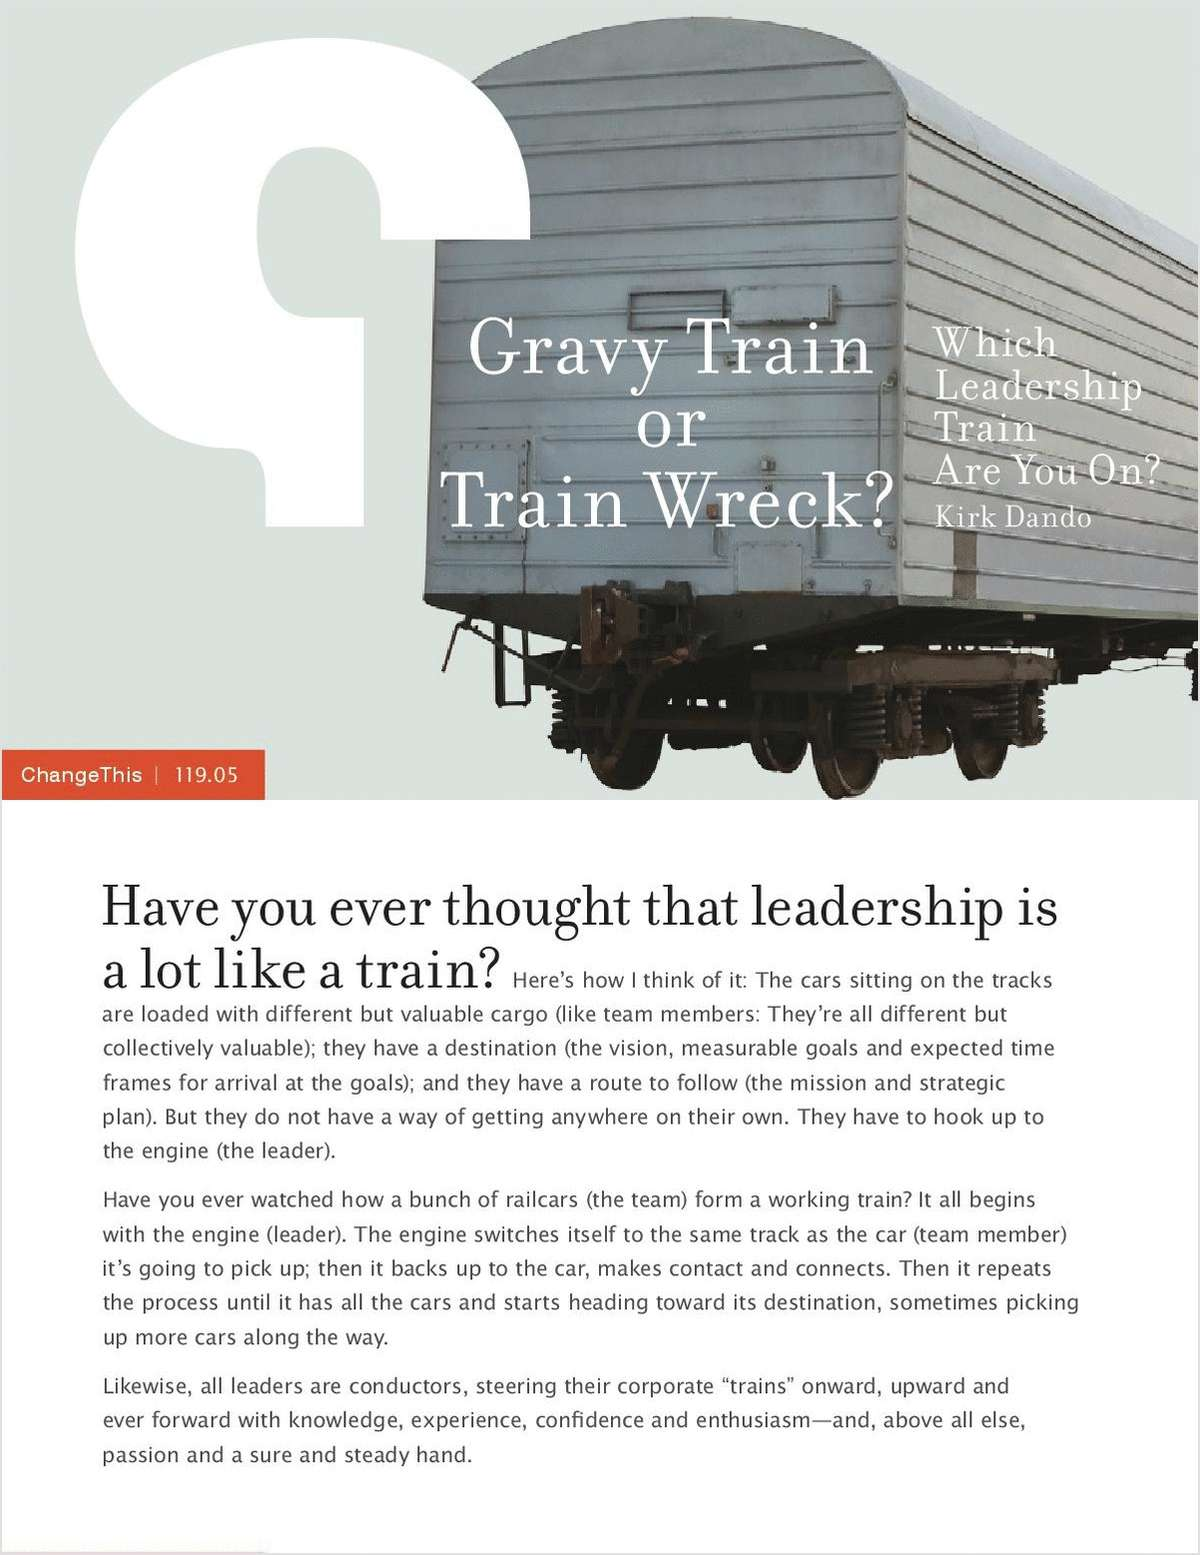 Gravy Train or Train Wreck? Which Leadership Train Are You On?